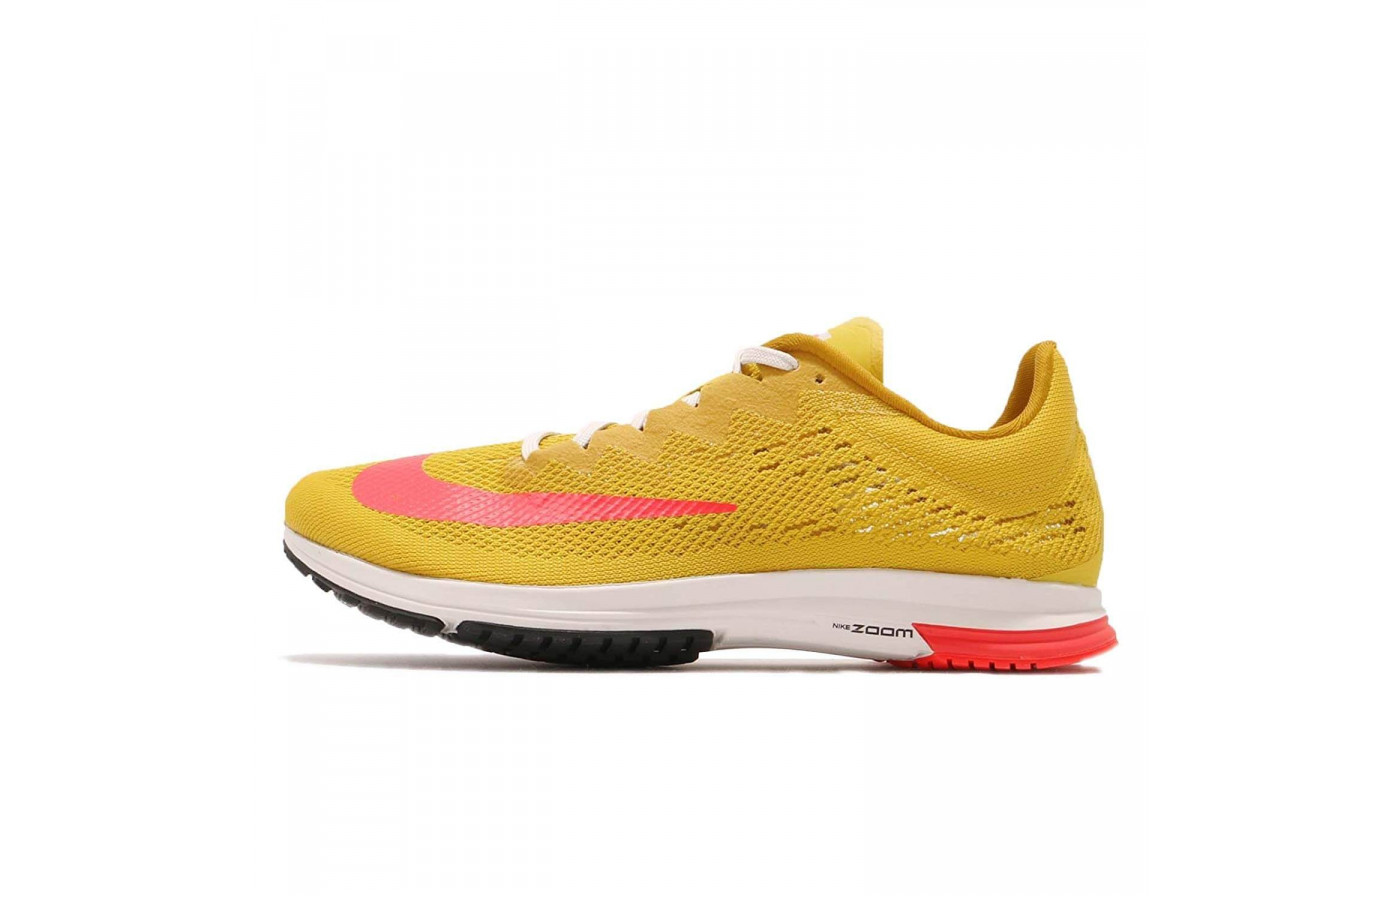 The Air Zoom Streak LT 4 is constructed with a Flymesh upper